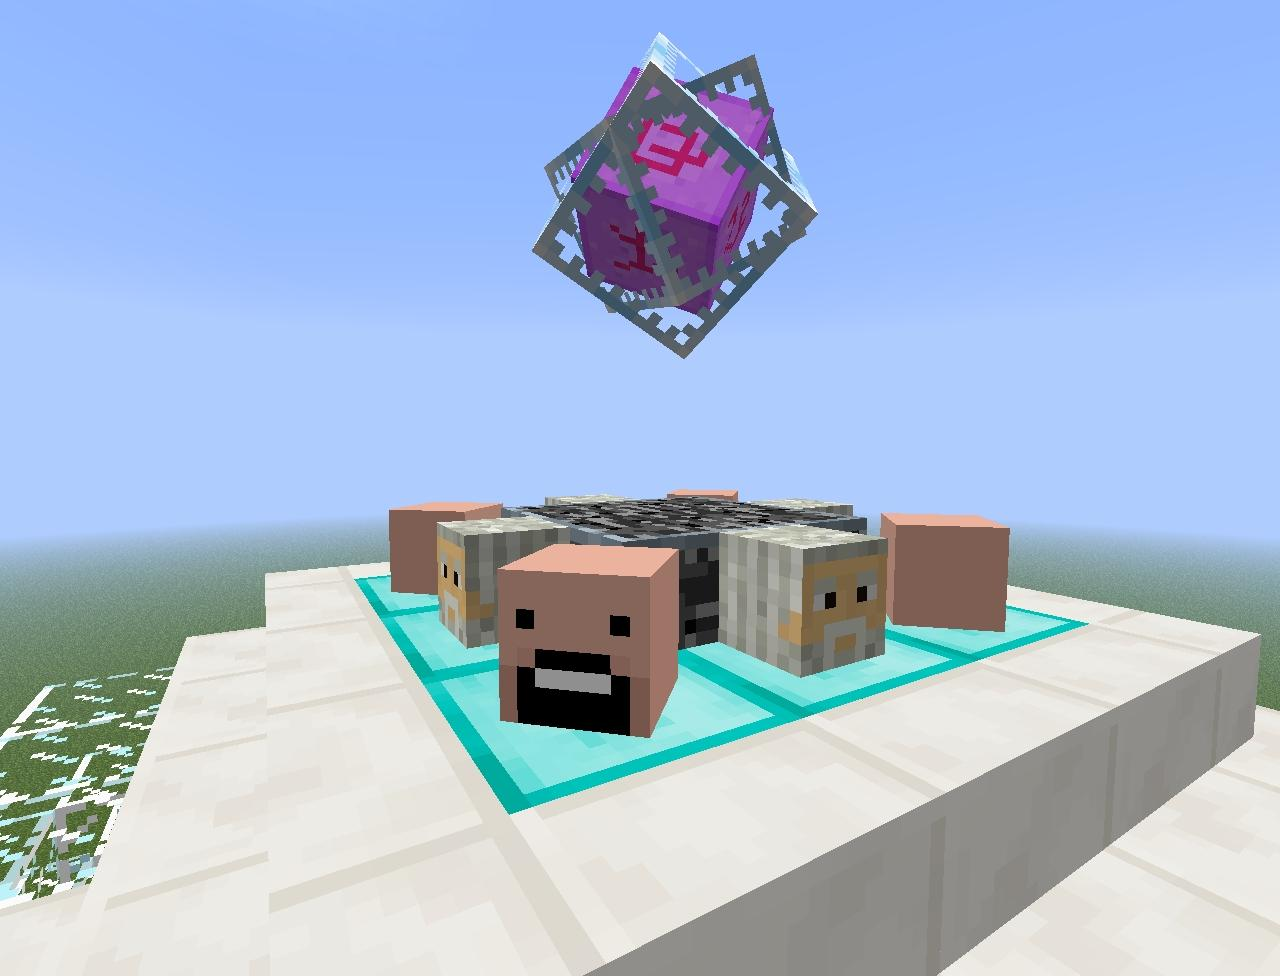 how to make end crystal in minecraft